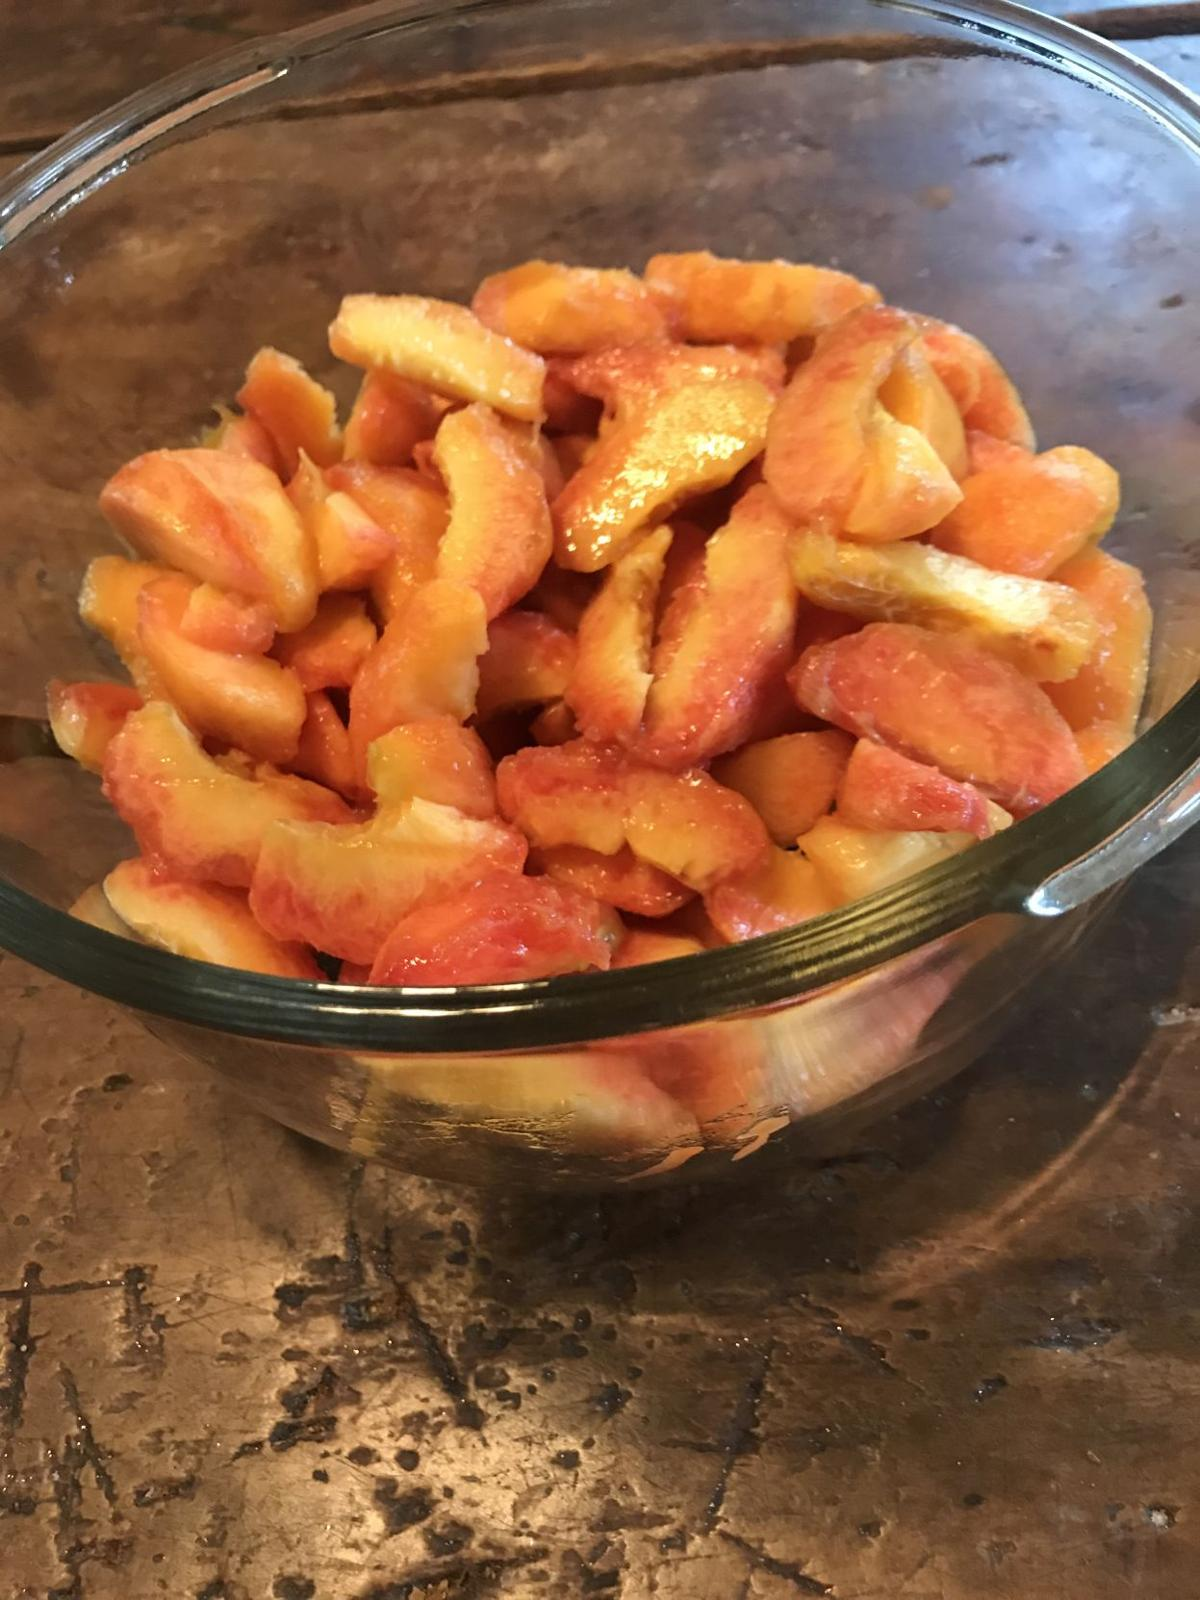 Peeled and sliced peaches